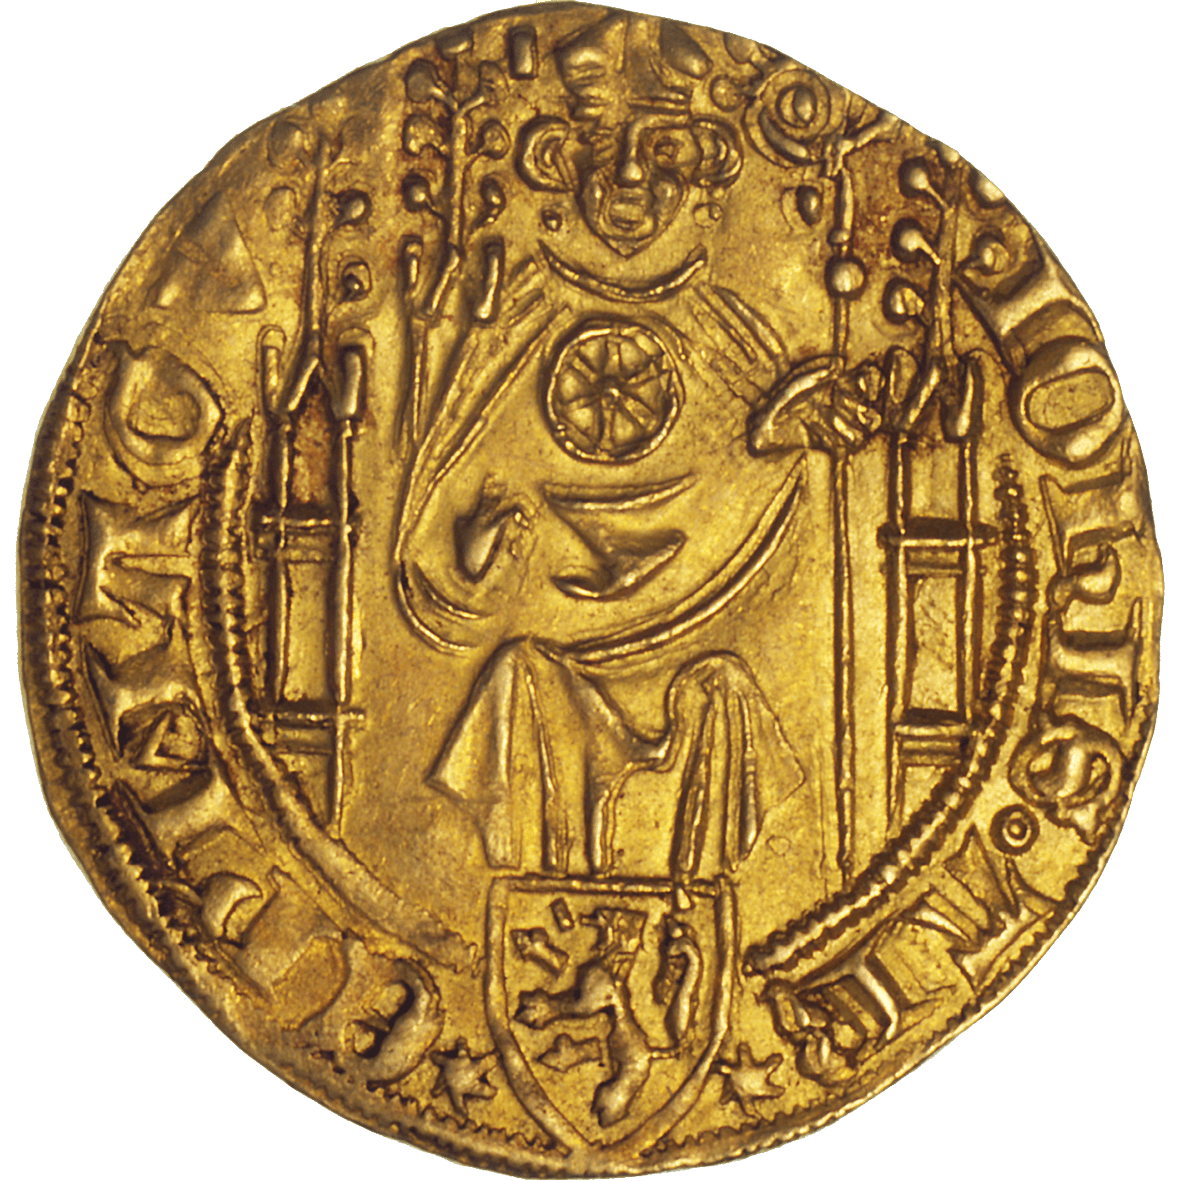 Holy Roman Empire, Archbishopric Mainz, Johann II of Nassau, Goldgulden (obverse)